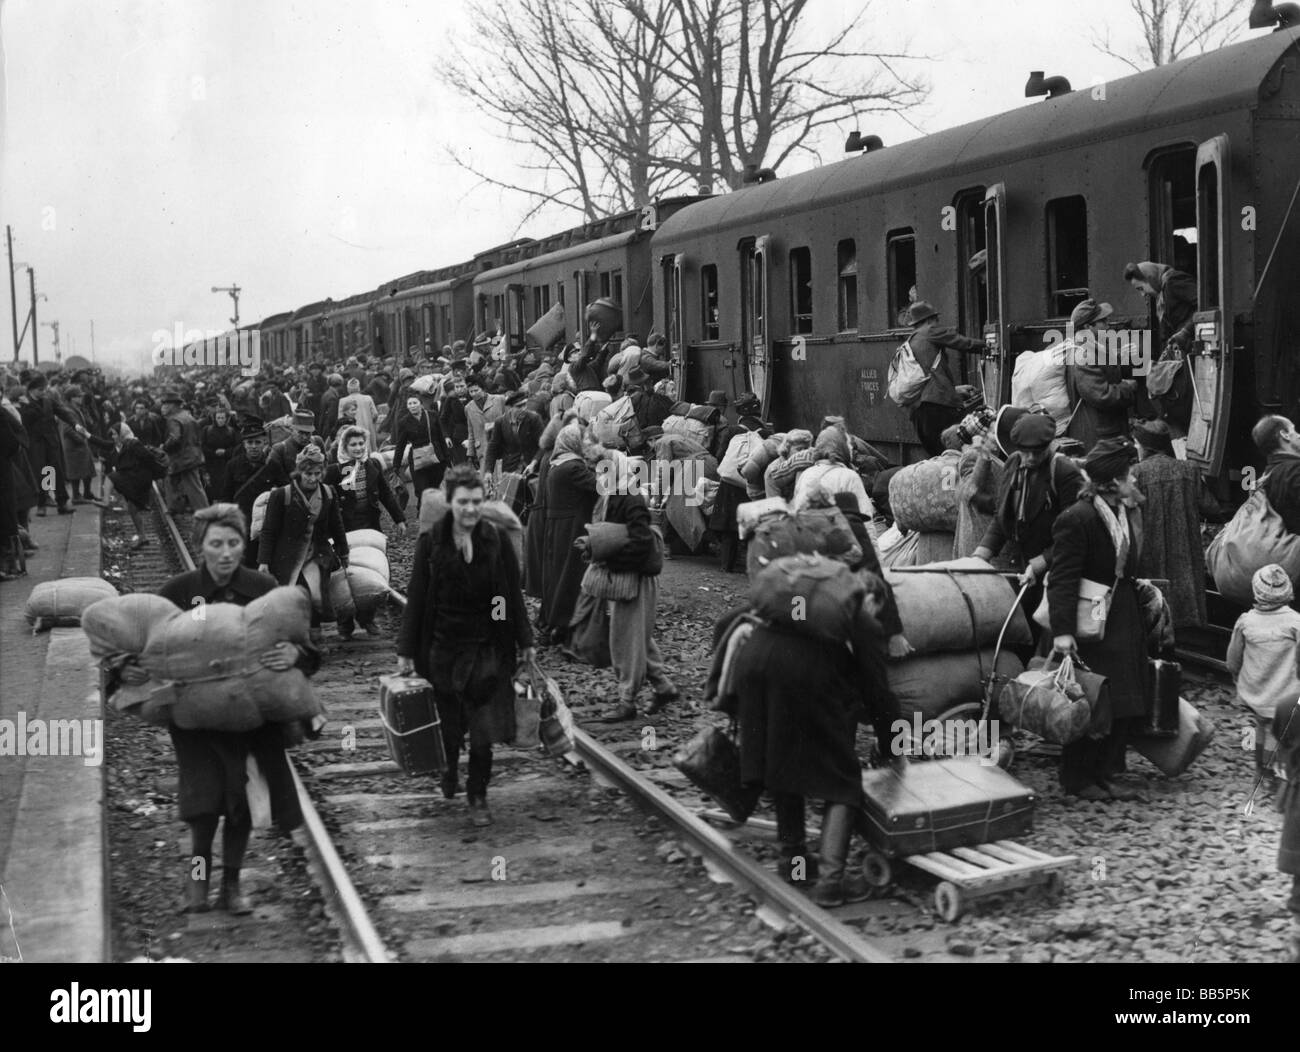 events, post war era, refugees, Camp Friedland, arrival of refugees from the east, November 1945, Additional-Rights - Stock Image